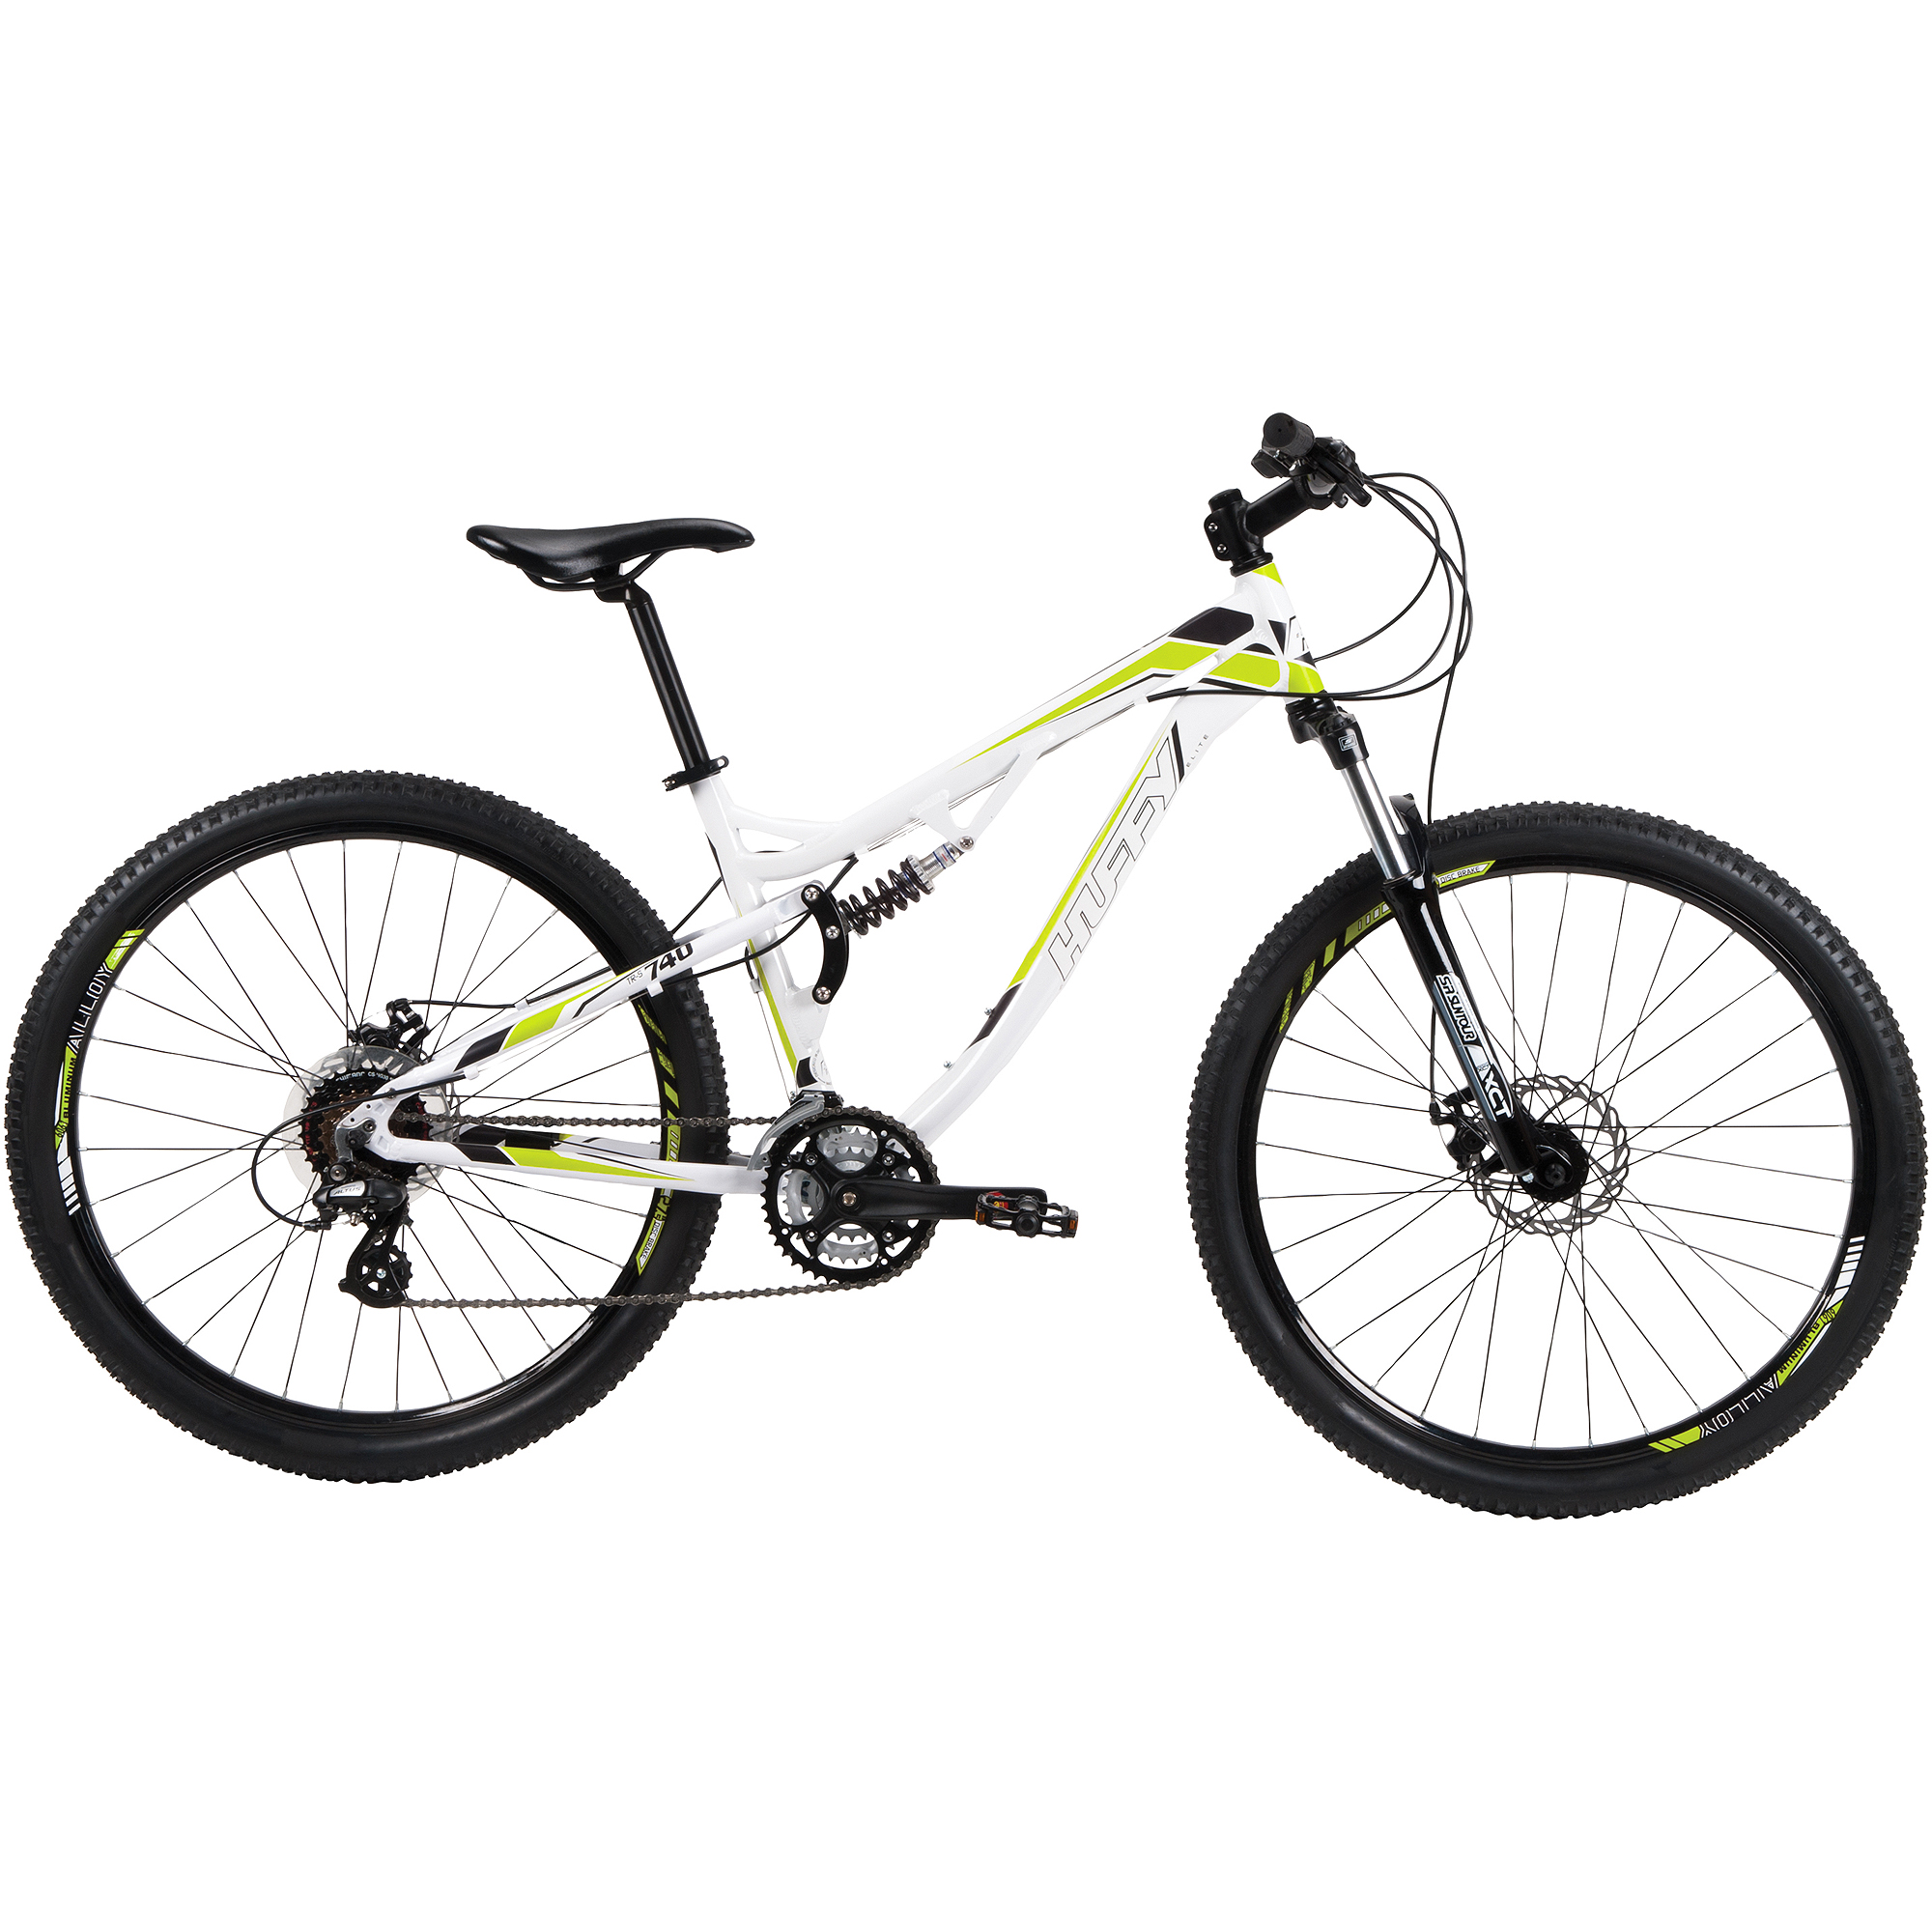 "27.5"" Huffy Elite TR-S 740 Men's Bike"